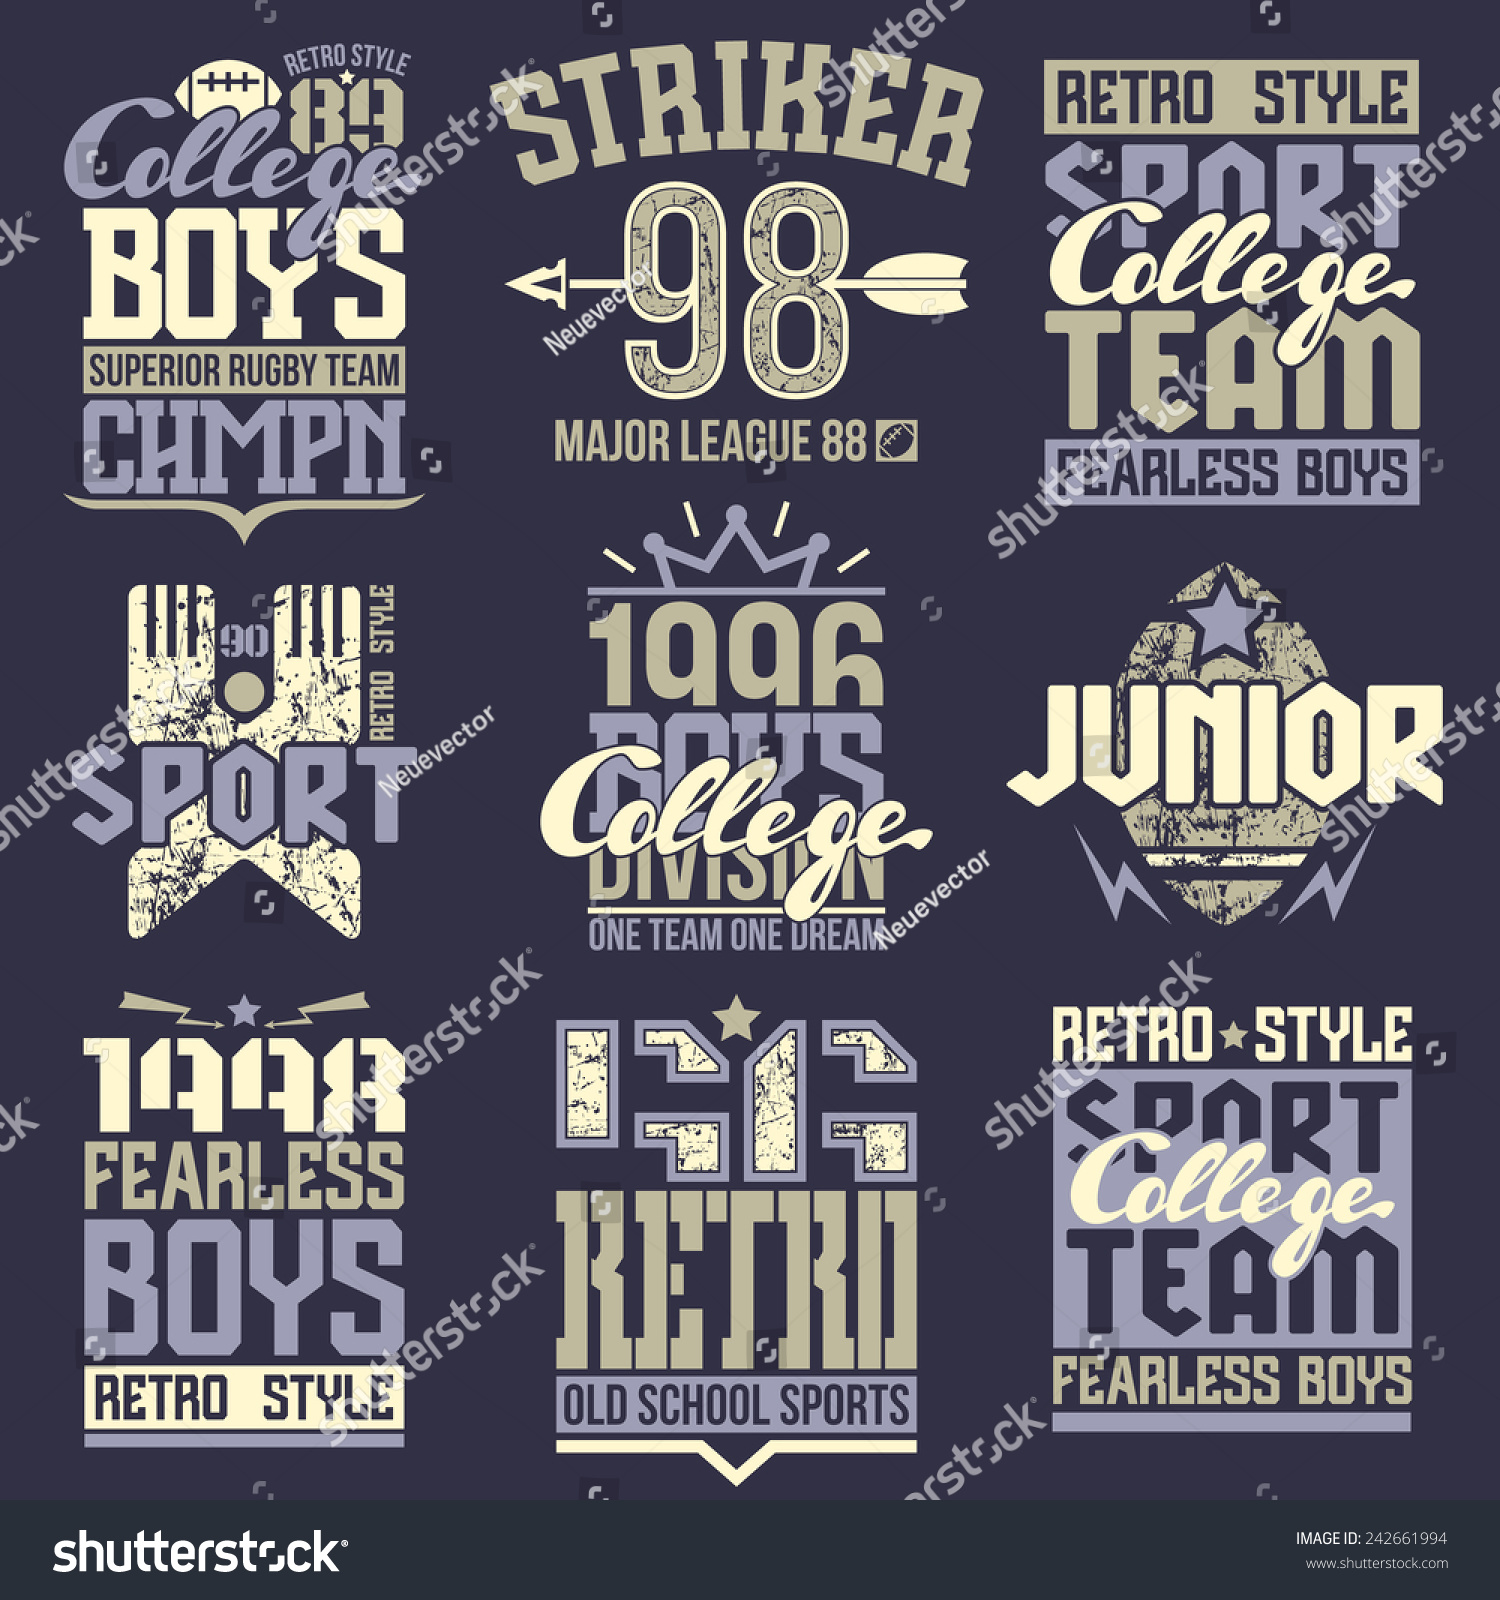 Design t shirt rugby - Design T Shirt Rugby College Rugby Team Emblems In Retro Style Trendy Graphic Design For